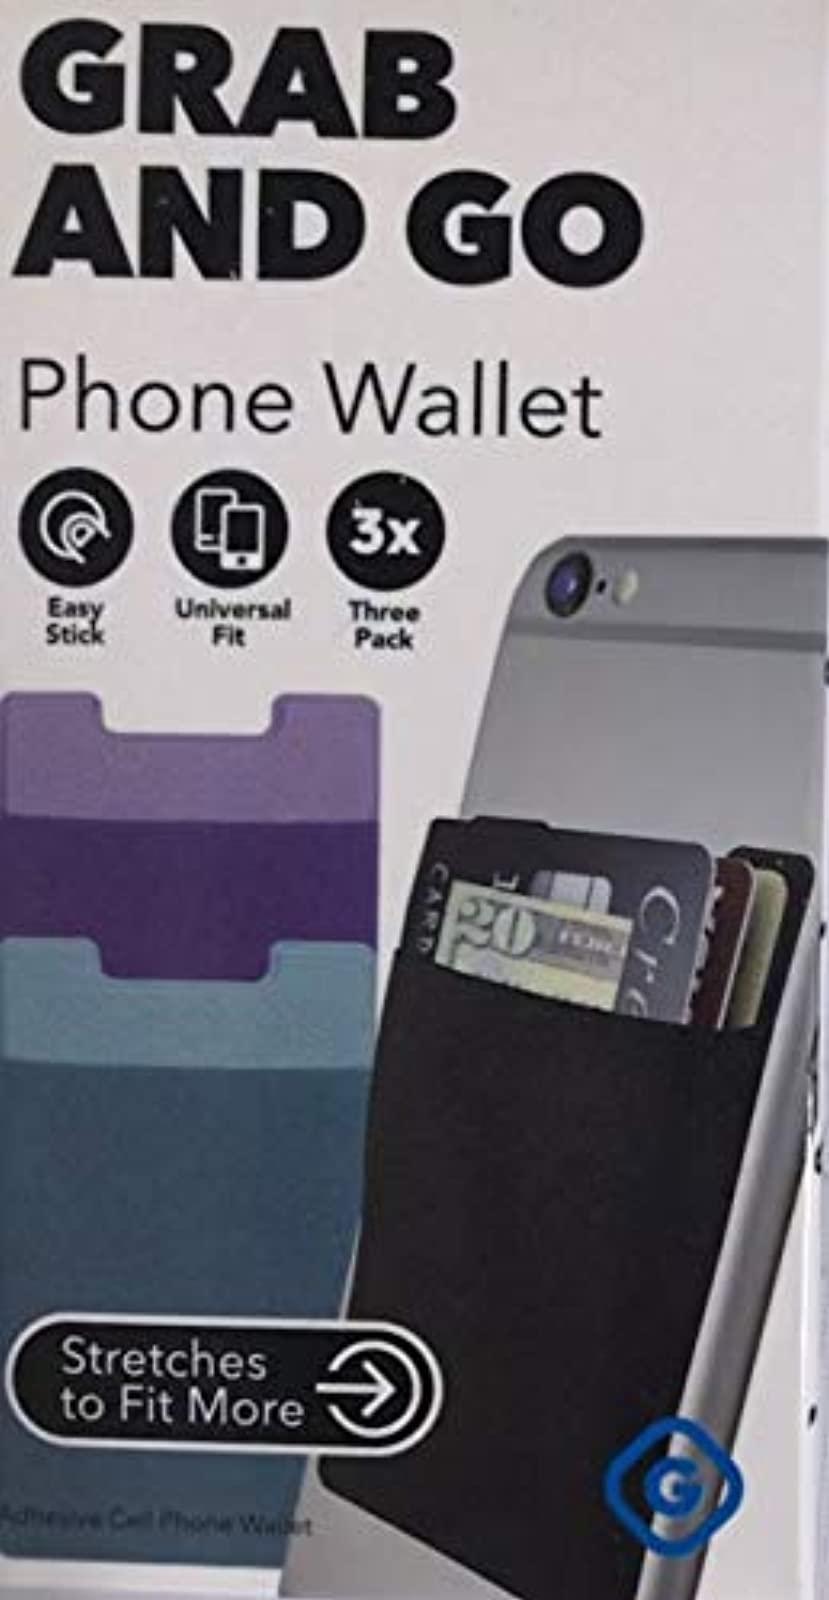 Gems 3 Pack Phone Wallet Pack 1 Each Black Purple And Turquoise Case Cover